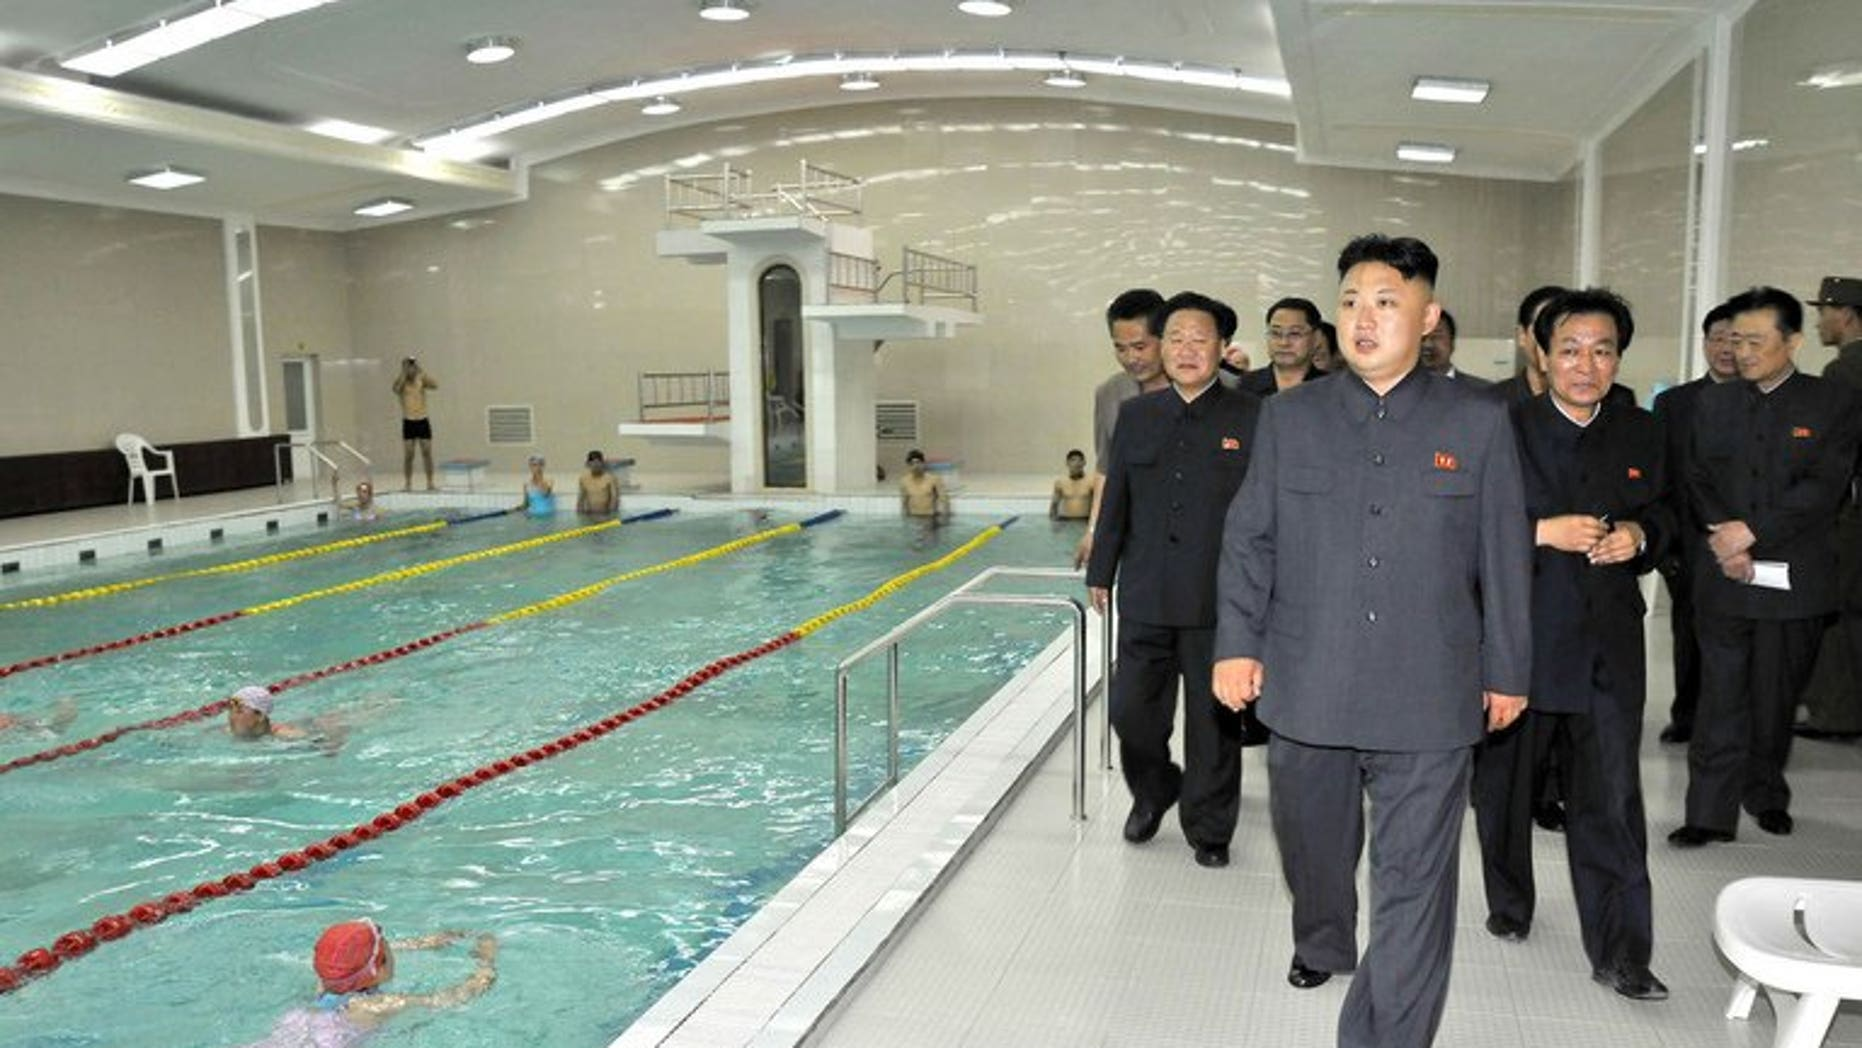 """North Korean leader Kim Jong-Un inspects a swimming pool, in a photo repleased by state media on June 22, 2013. North Korea has blamed the United States for escalating tensions on the Korean peninsula and called for """"real actions"""" if Washington wants peace."""